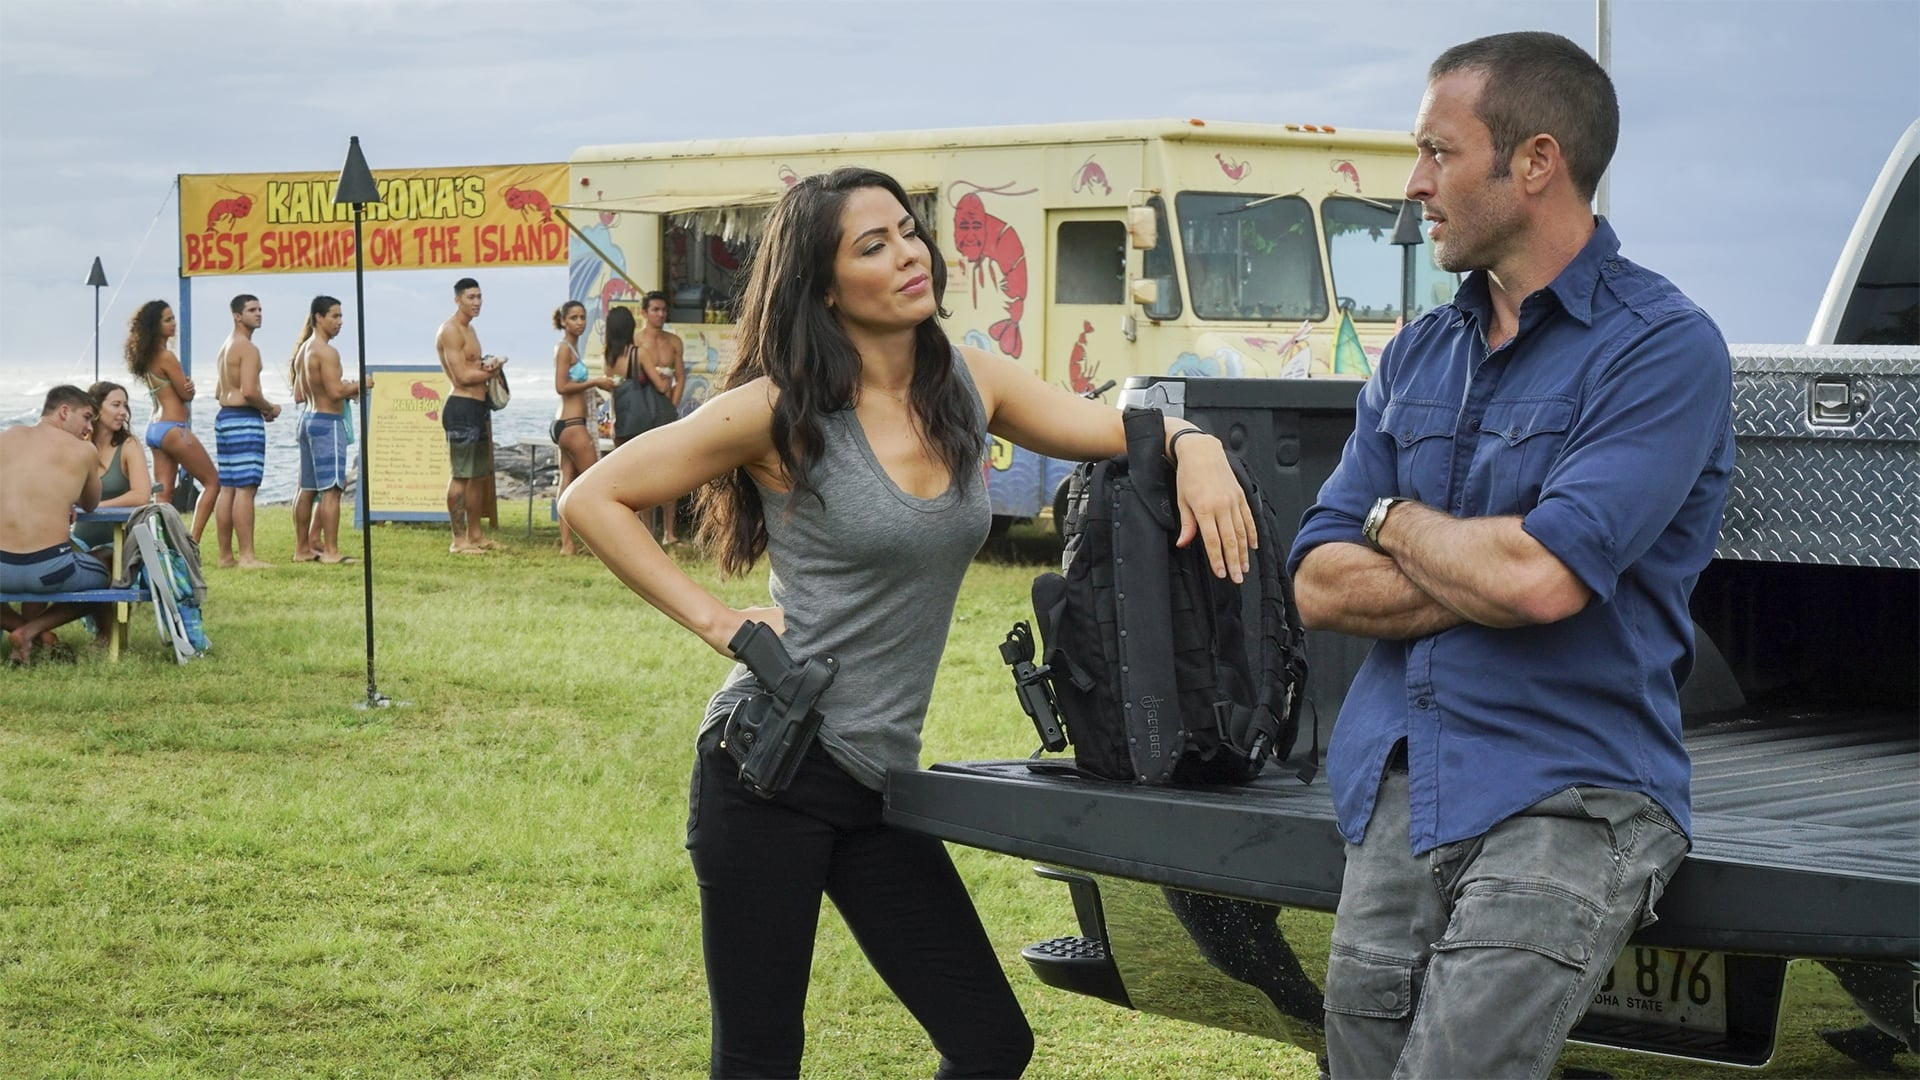 Hawaii Five-0 - Season 8 Episode 20 : He lokomaika'i ka manu o Kaiona (Kind is the Bird of Kaiona)